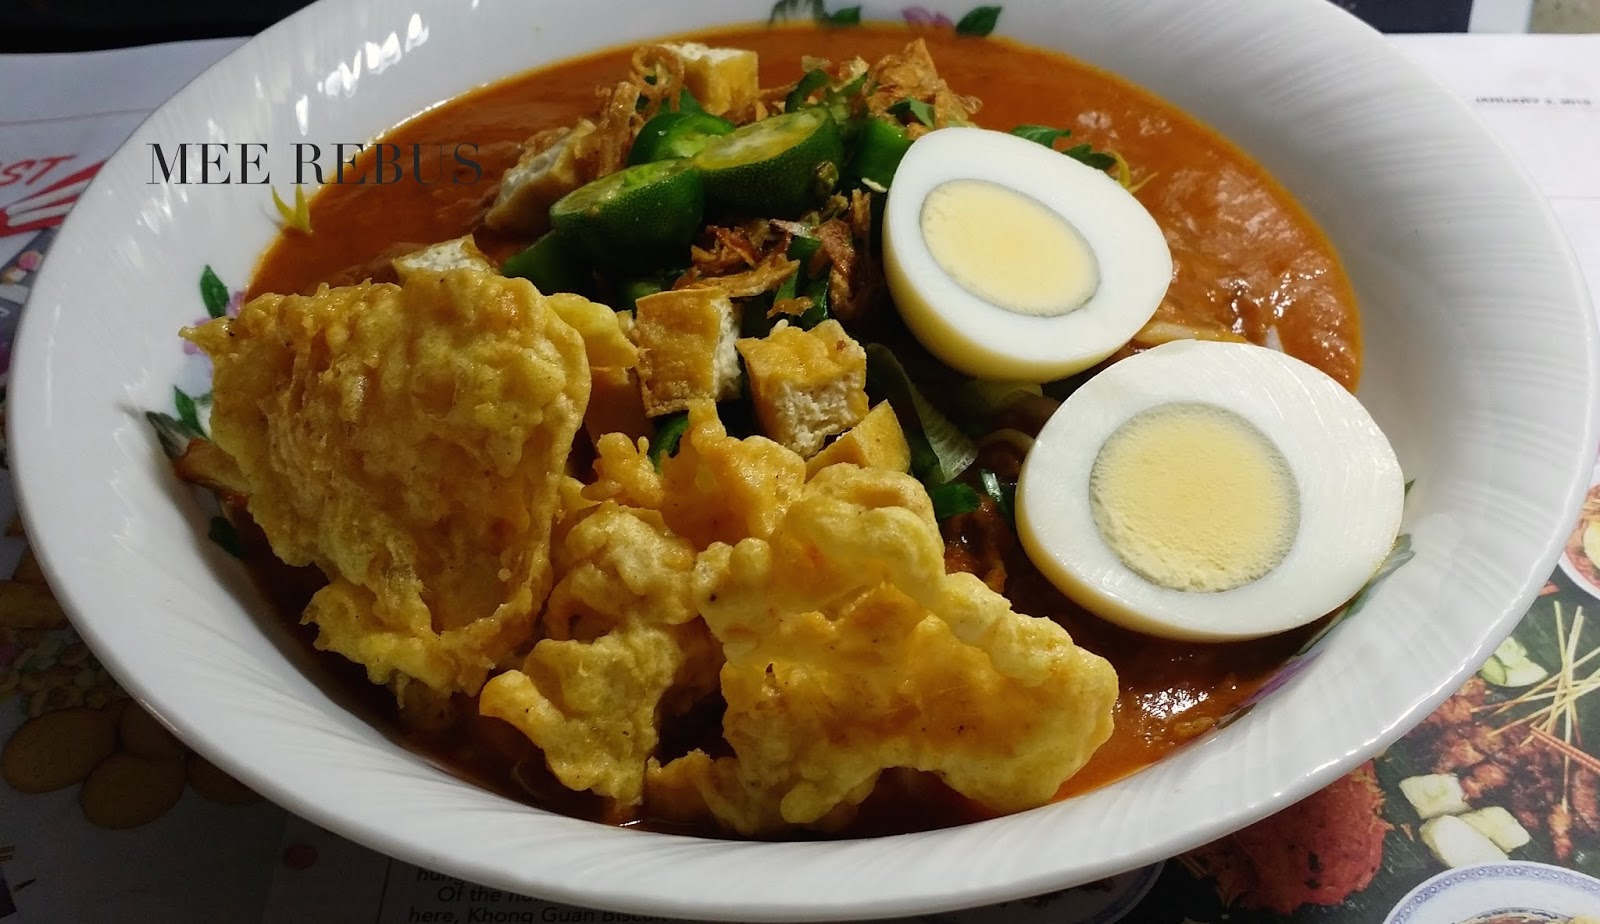 My Food Pick Mee Rebus A Local Hawker Is Delicious And Por Noodle Dish In Singapore I Ve Created With Easy Basic Steps